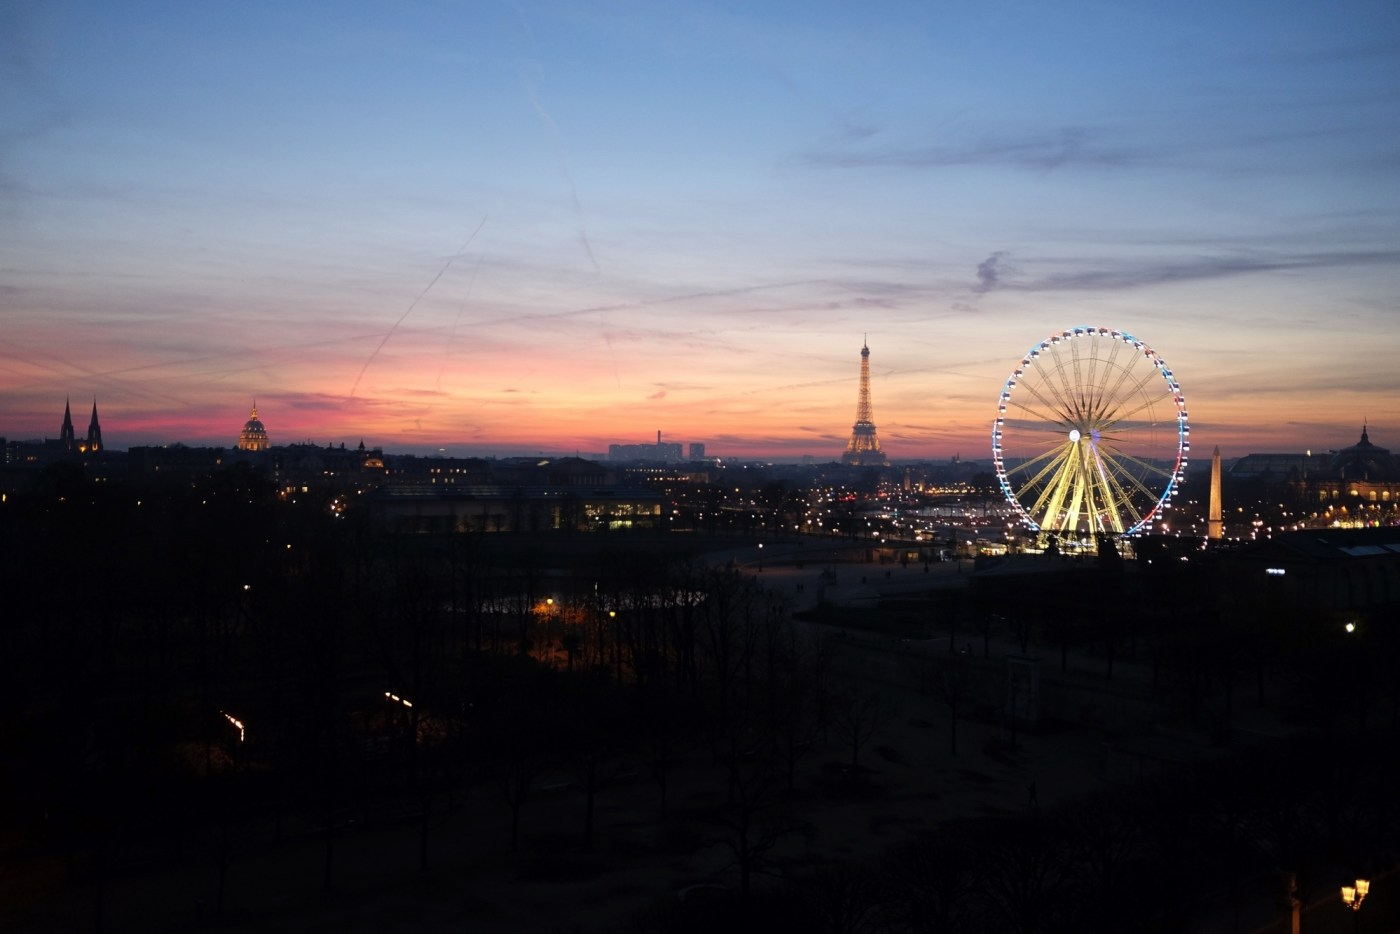 View of Eiffel Tower at sunset